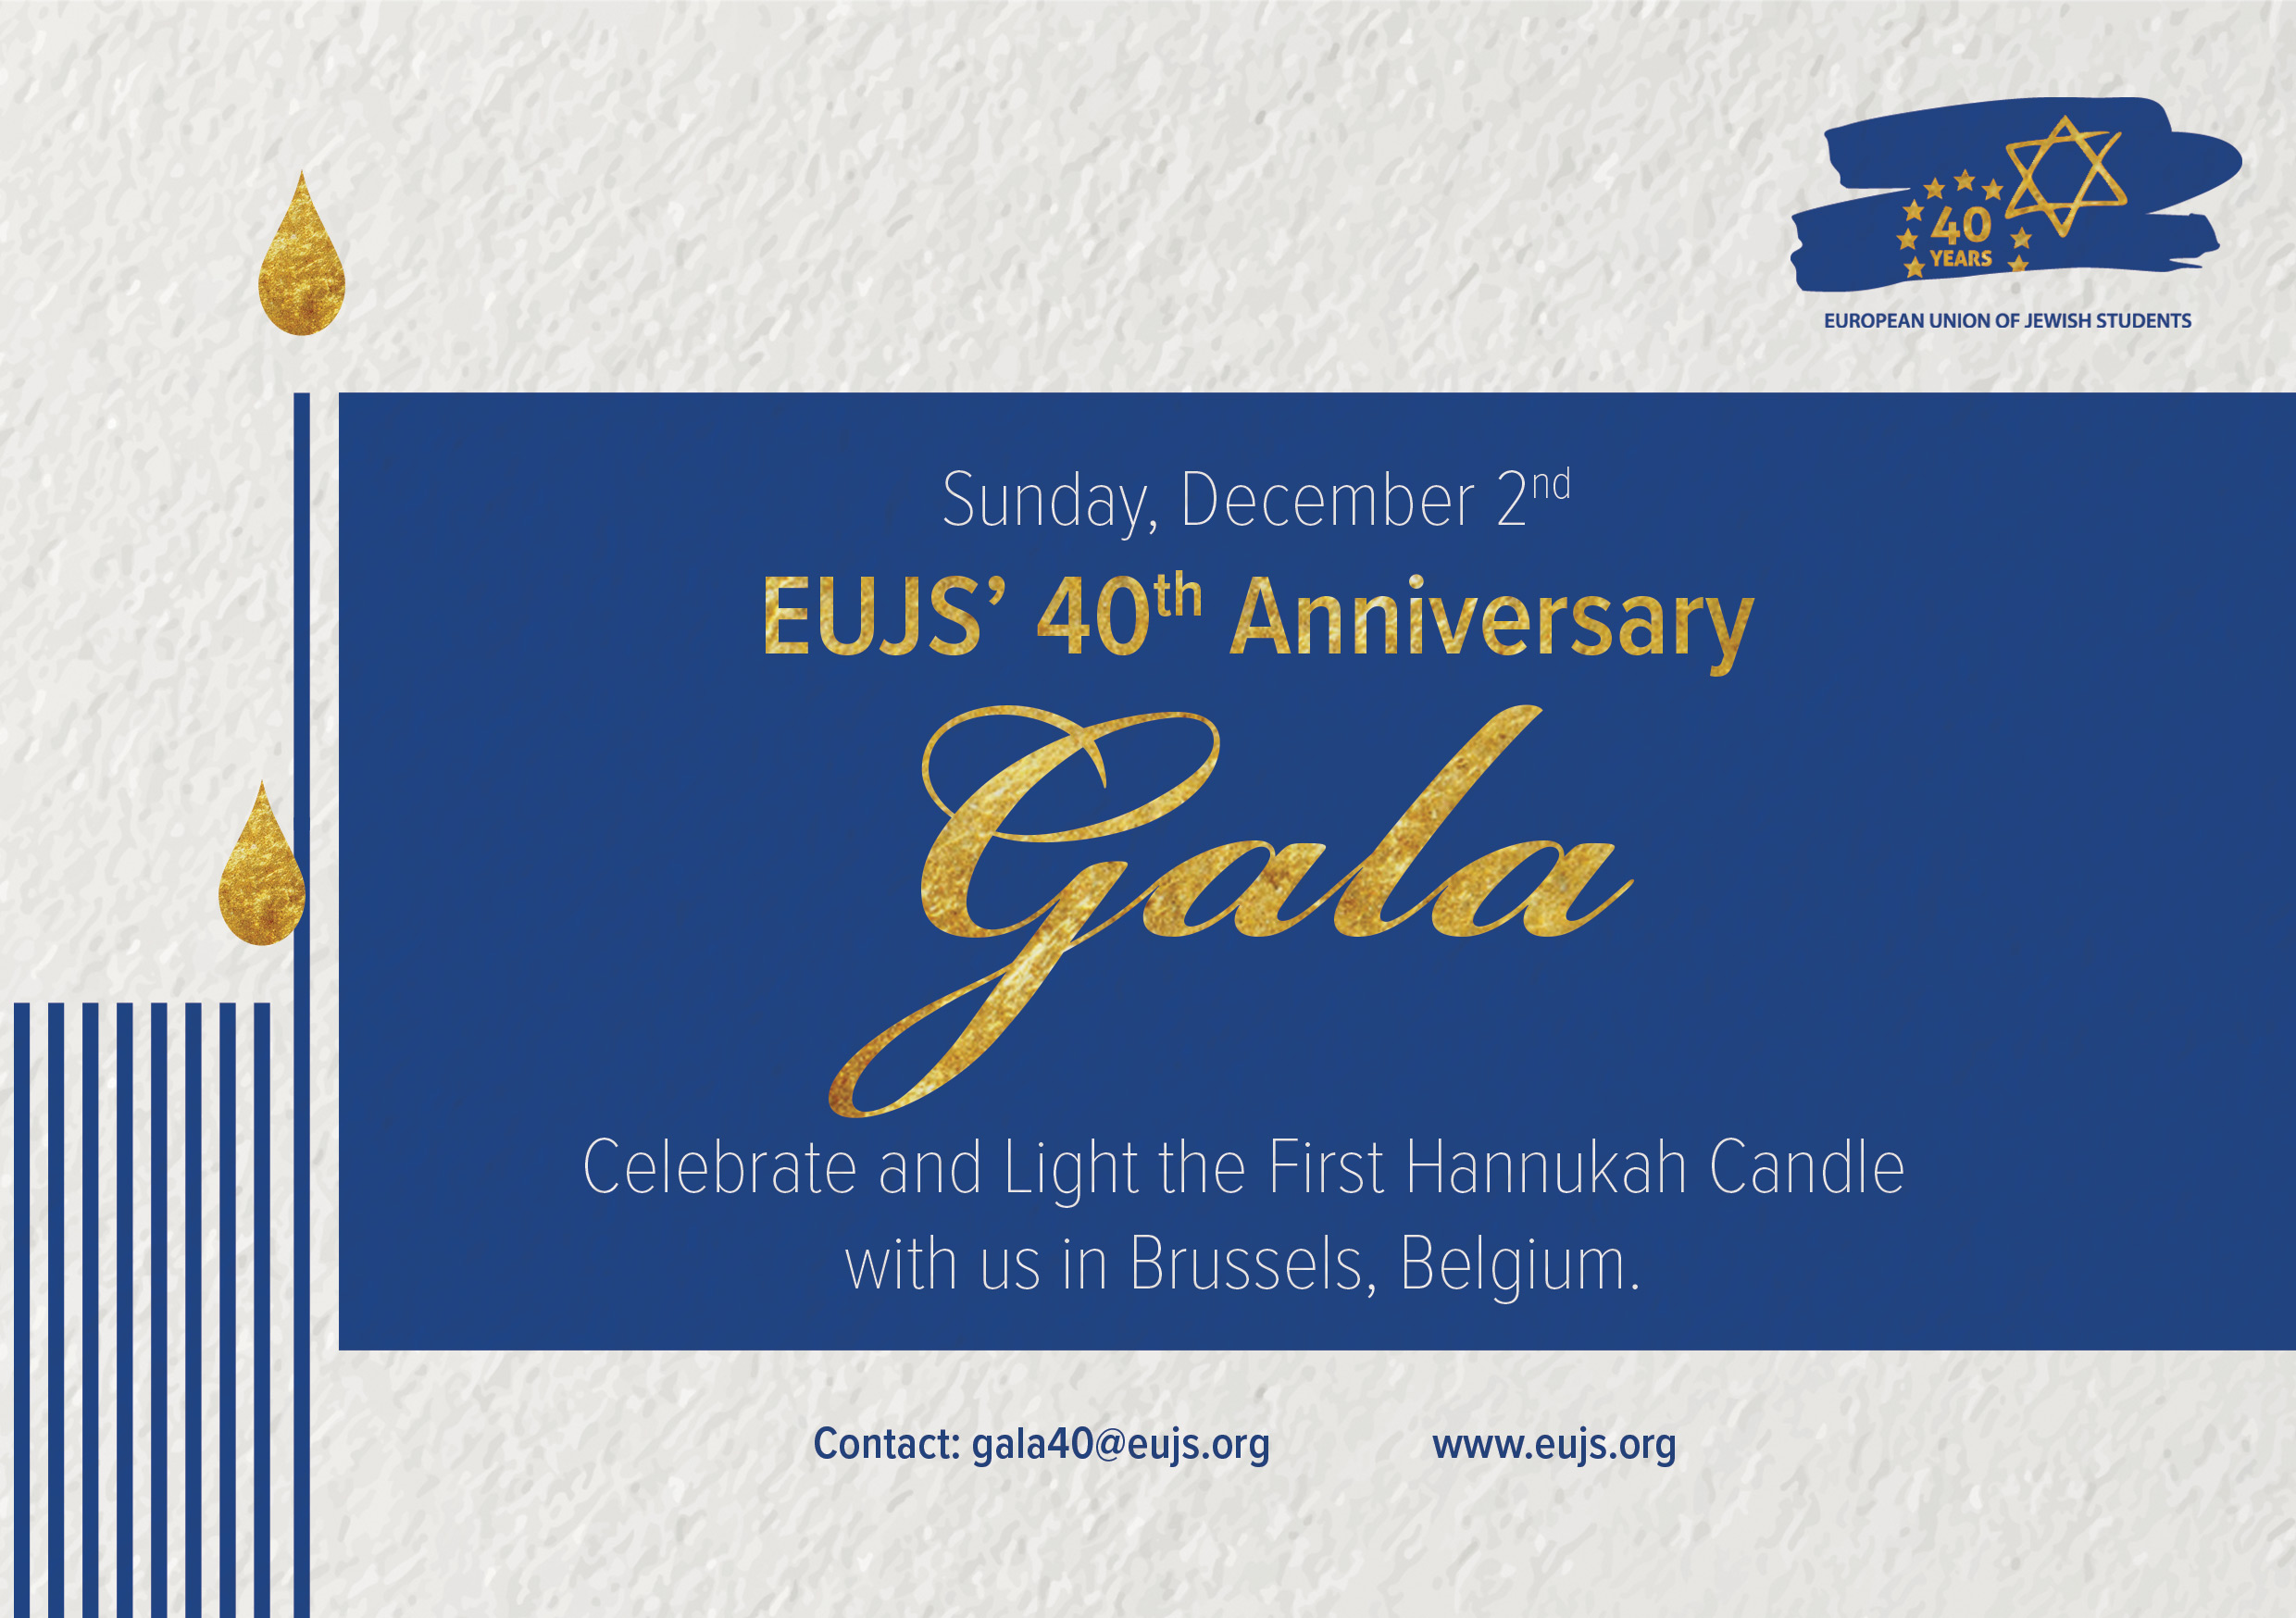 EUJS-gala-invitation-website